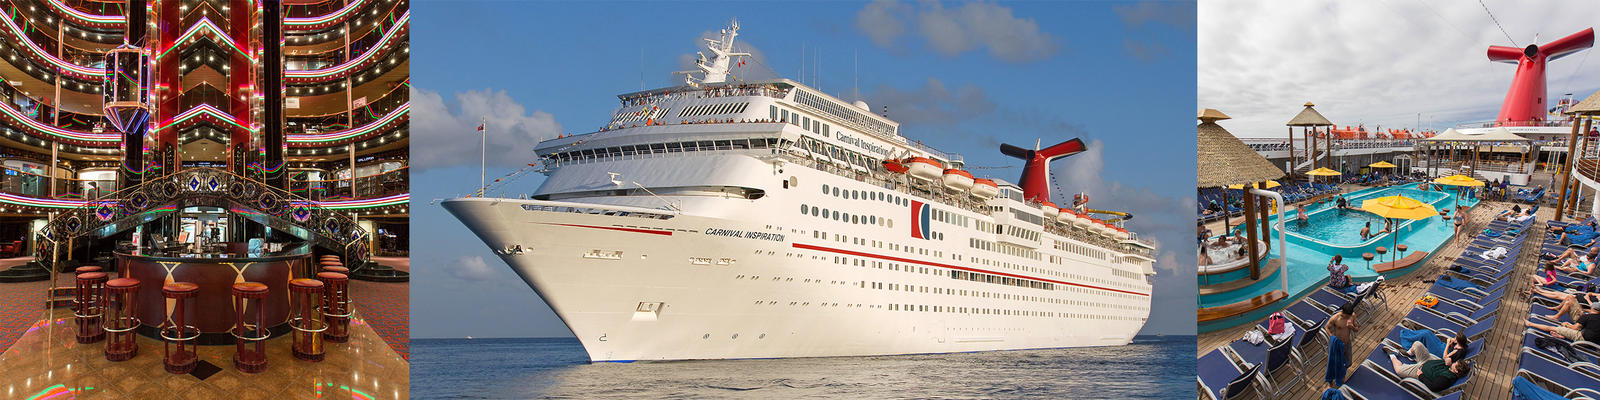 inspiration cruises and tours reviews